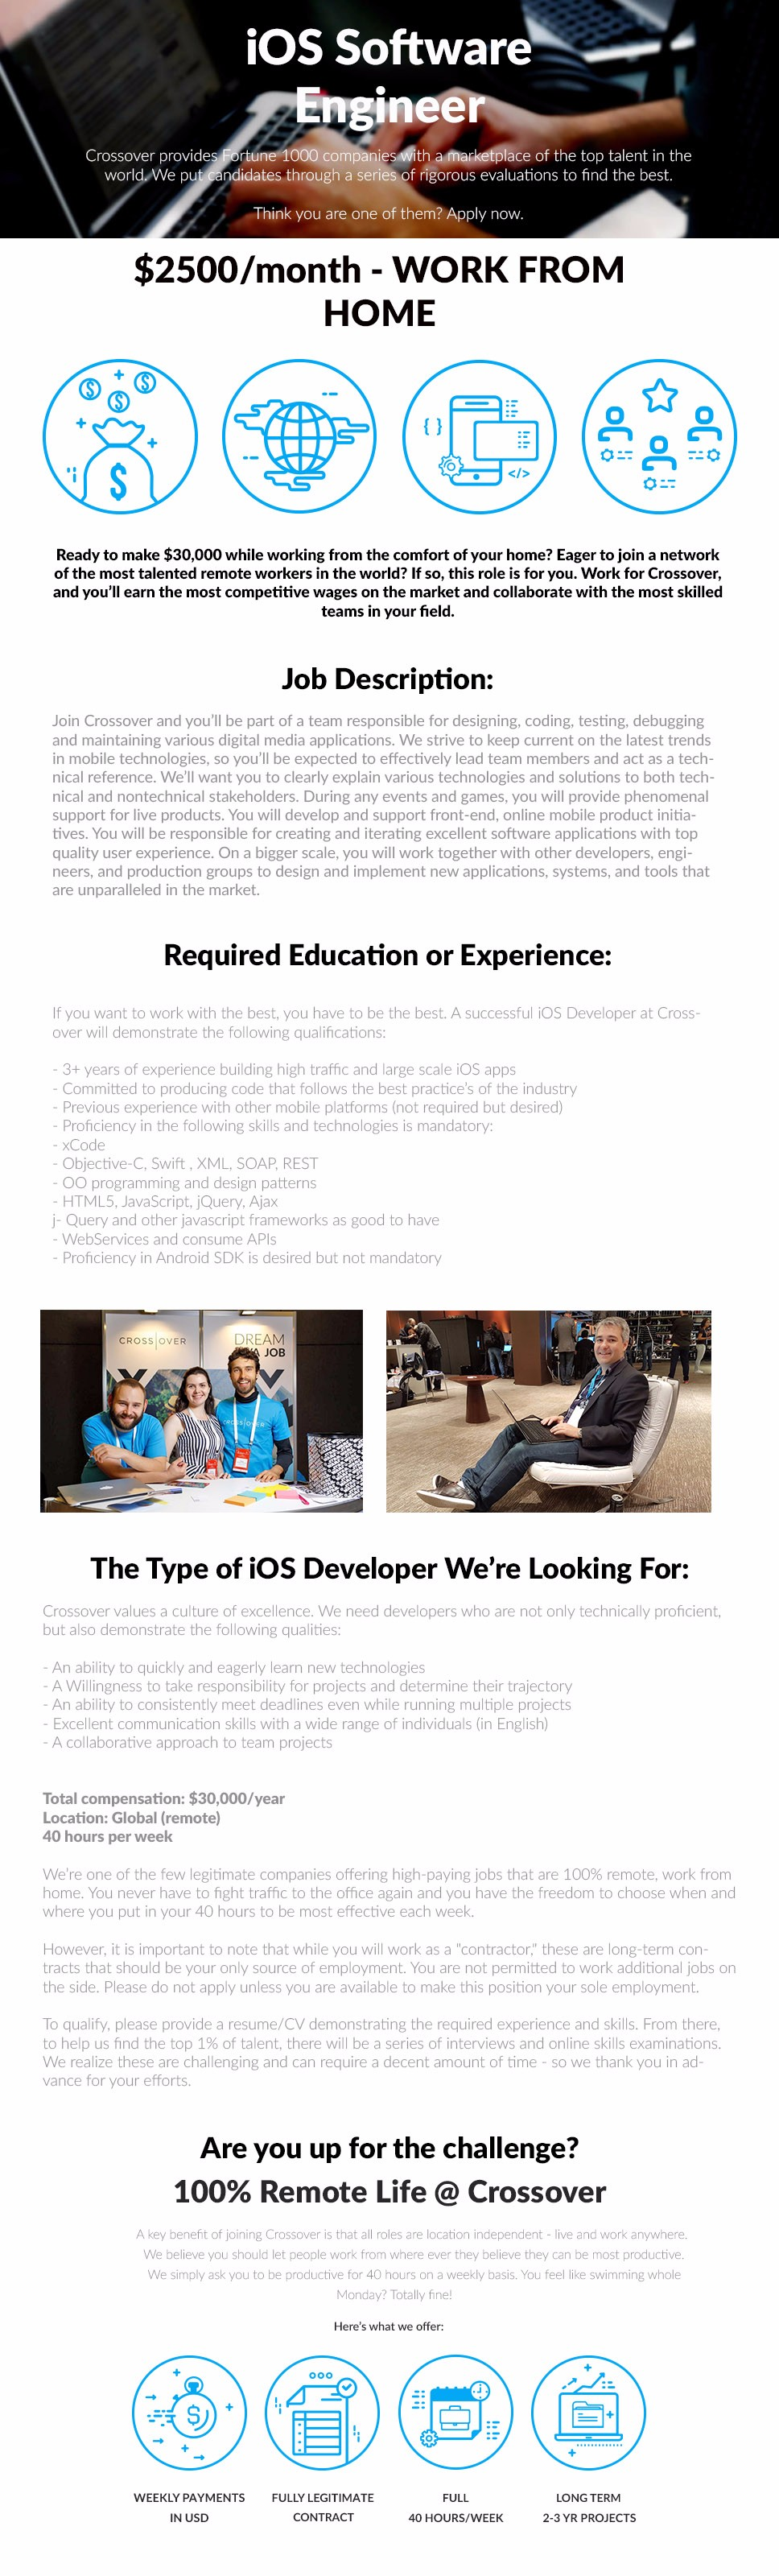 iOS Software Engineer, Crossover for work, responsible for designing, coding, testing, debugging and maintaining various digital media applications, HTML5, JavaScript, jQuery, Ajax